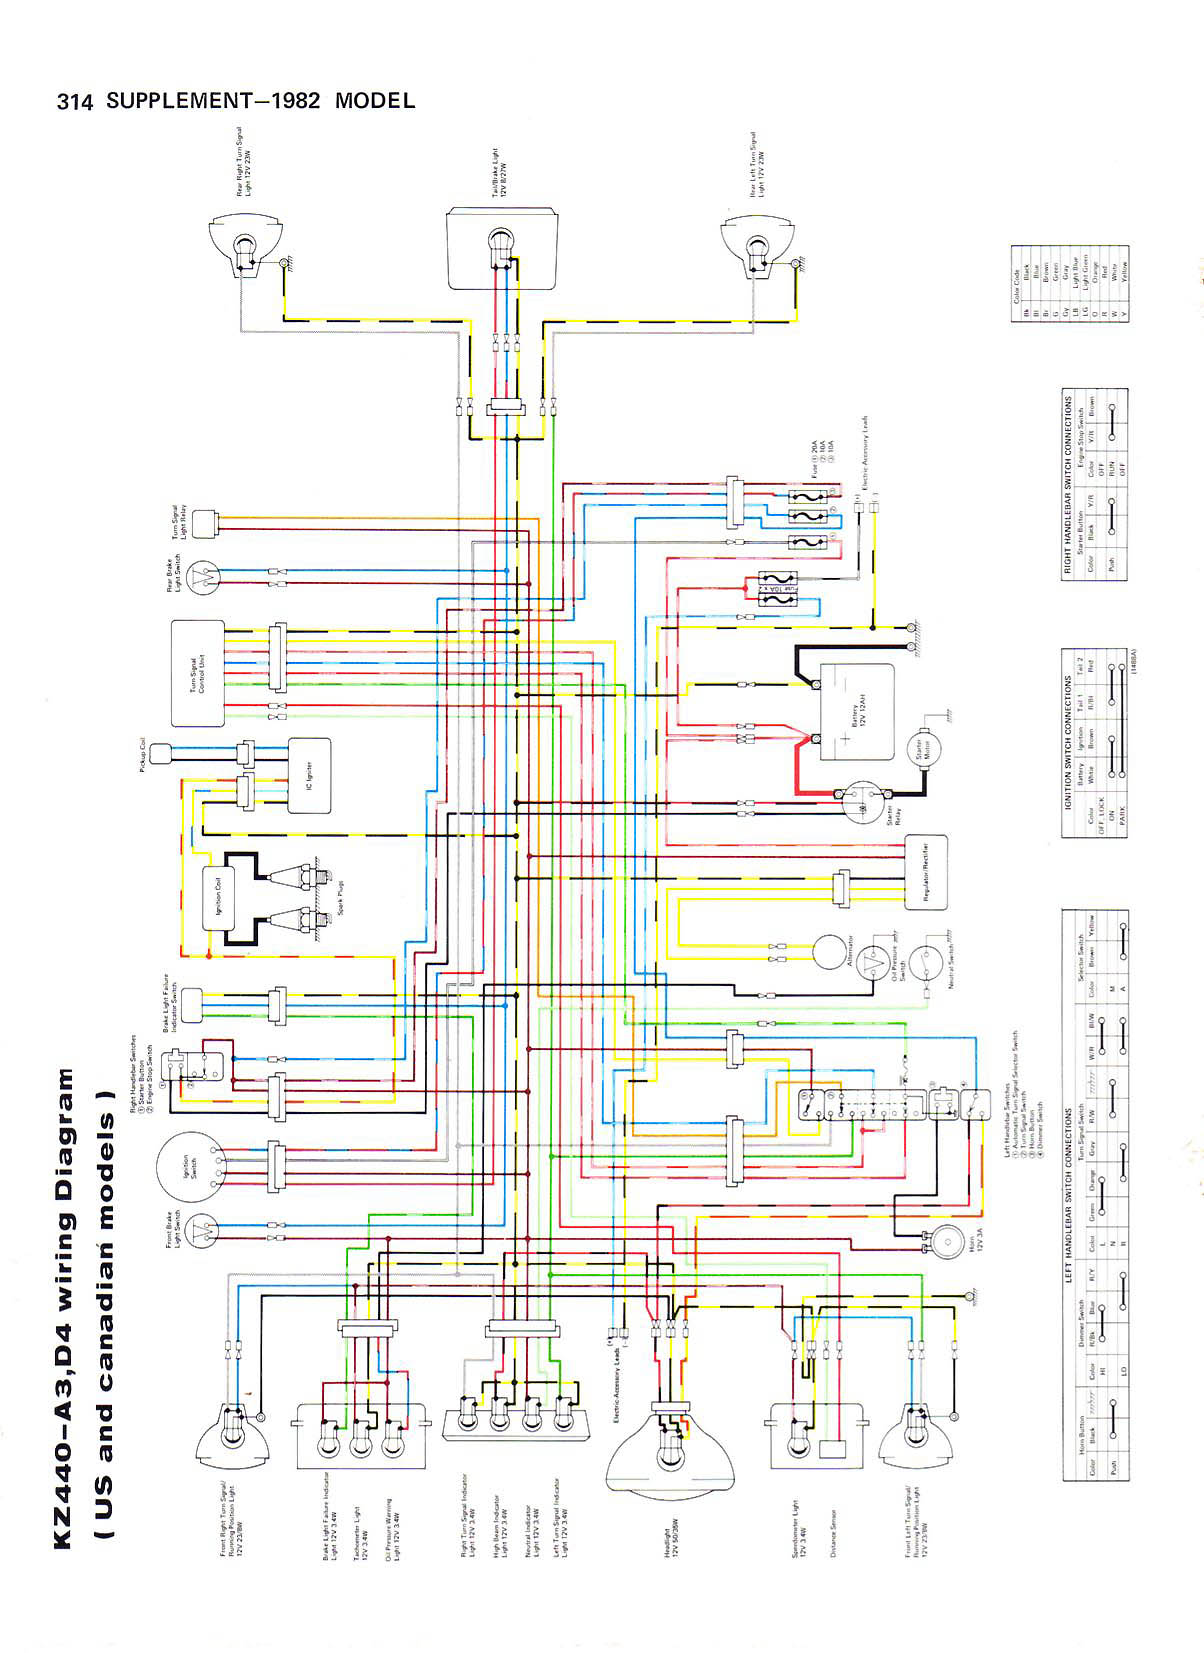 Kawasaki KZ 440 %2780 a %2782 Service Manual_Page_311 index of kz440 wiring diagrams 1981 kawasaki 440 ltd wiring diagram at n-0.co